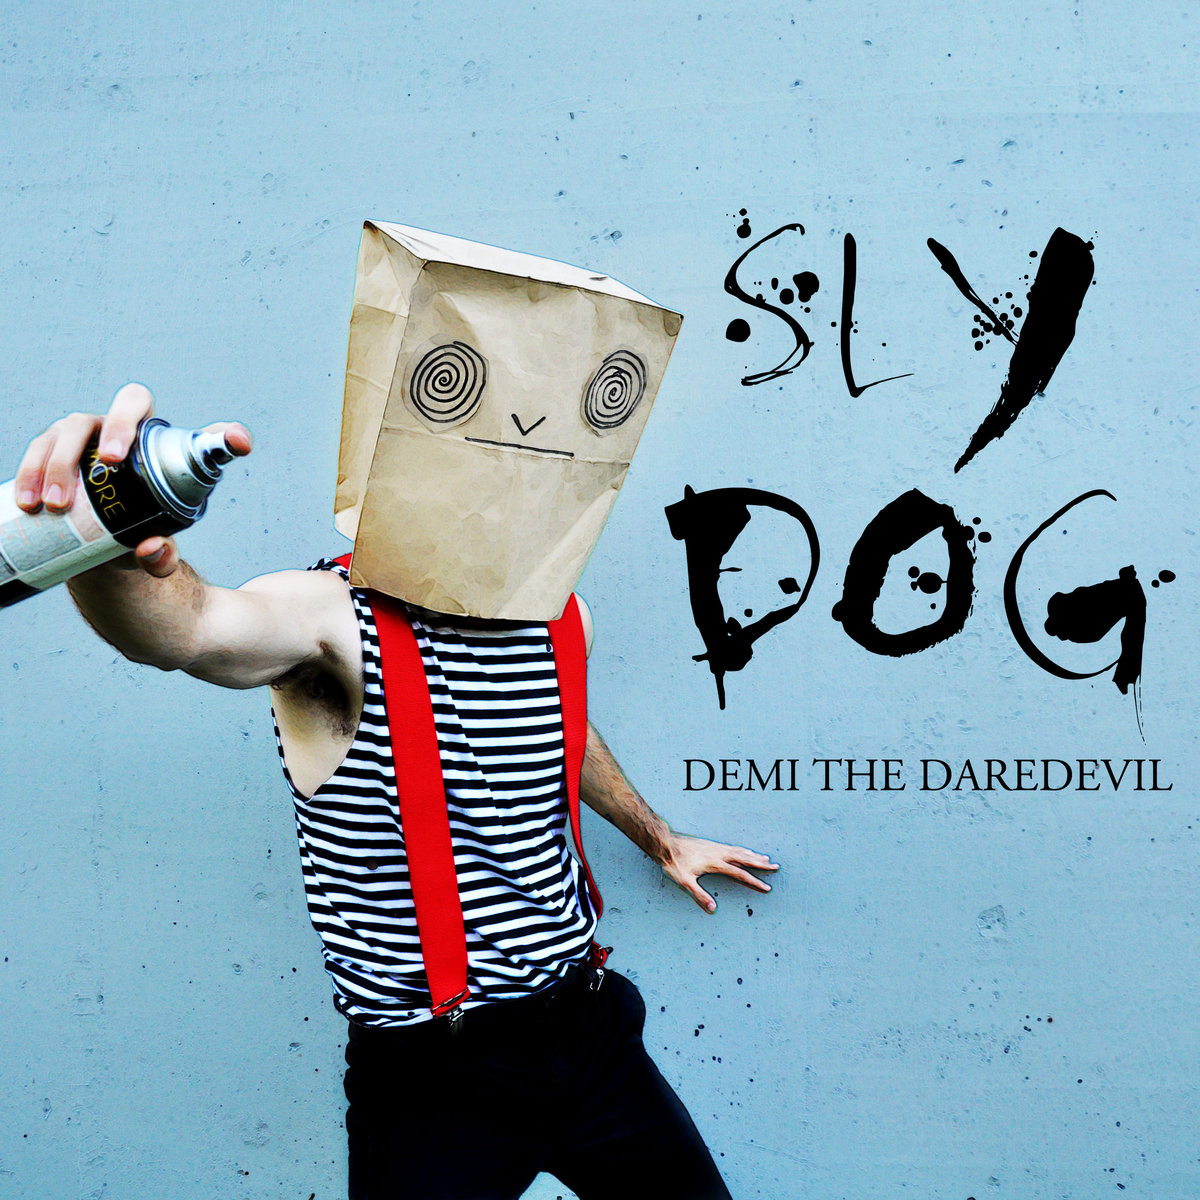 DEMI THE DAREDEVIL   Sly Dog  Indie  Mixer